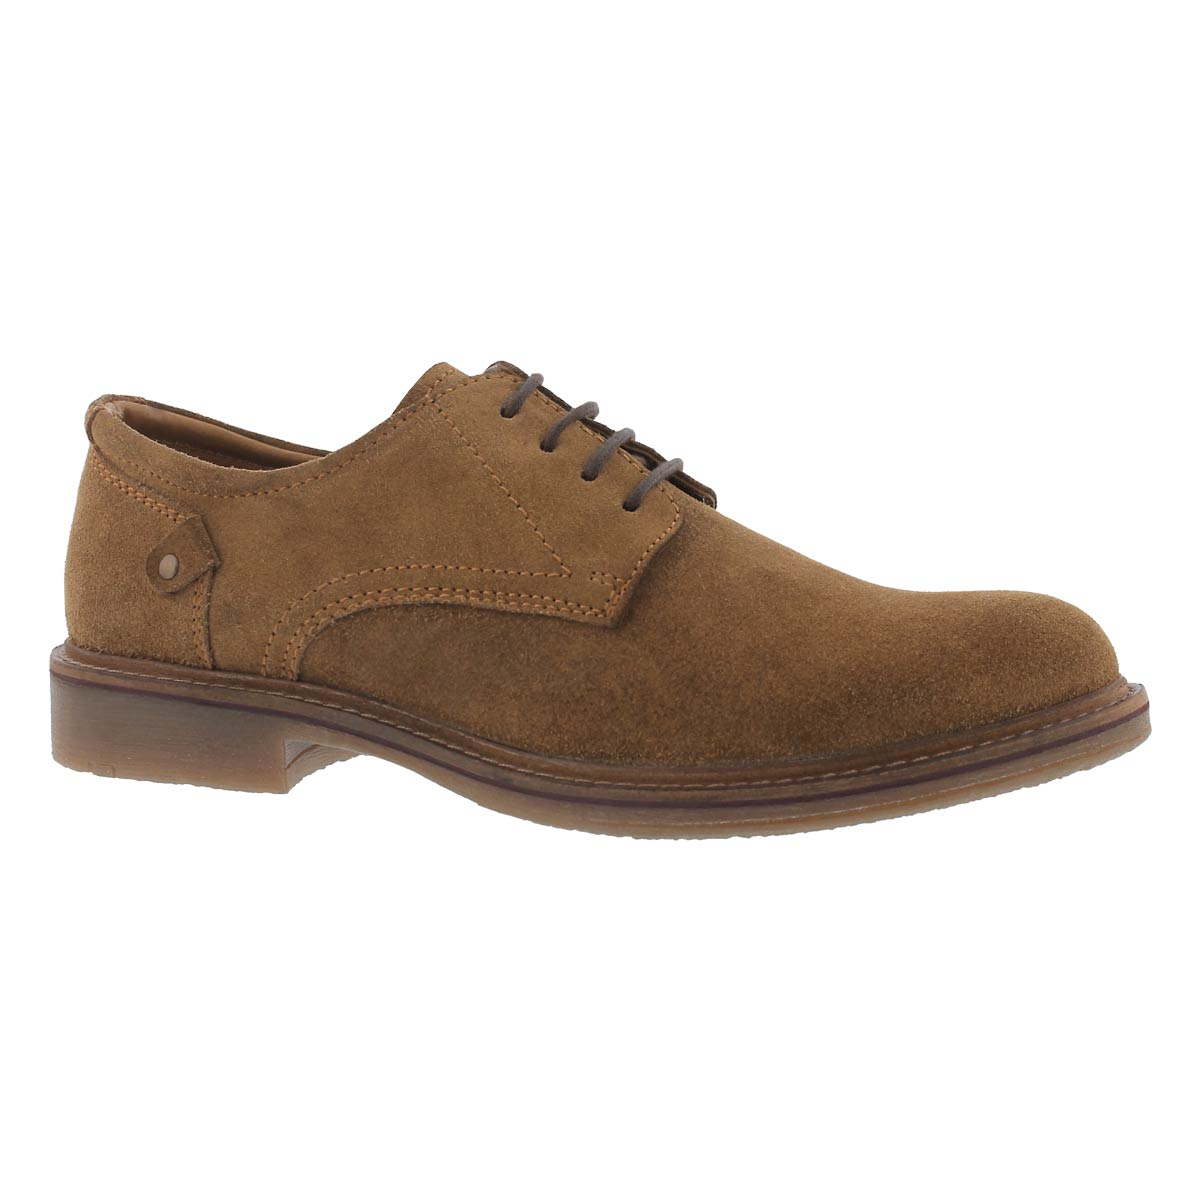 Mns Andy chesnut lace up casual oxford